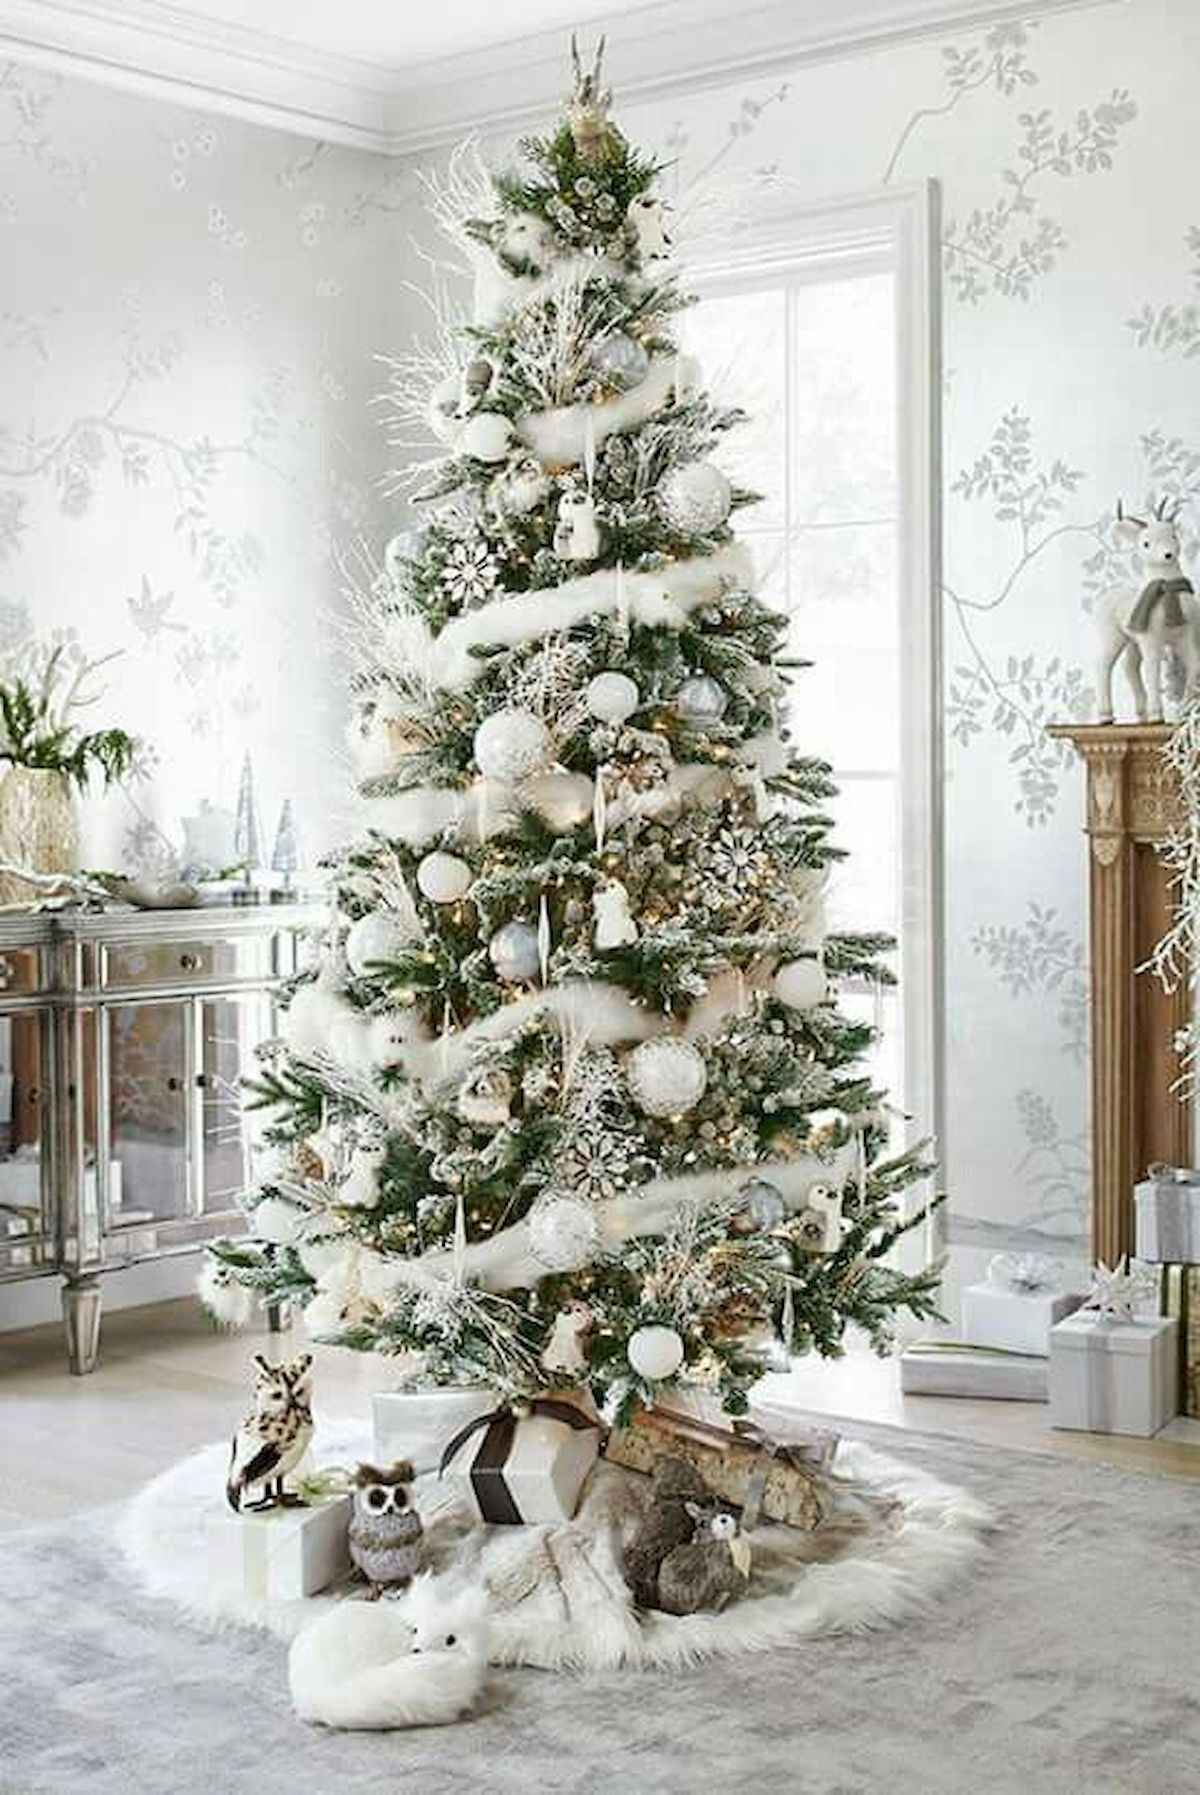 60 awesome christmas tree decorations ideas (8)